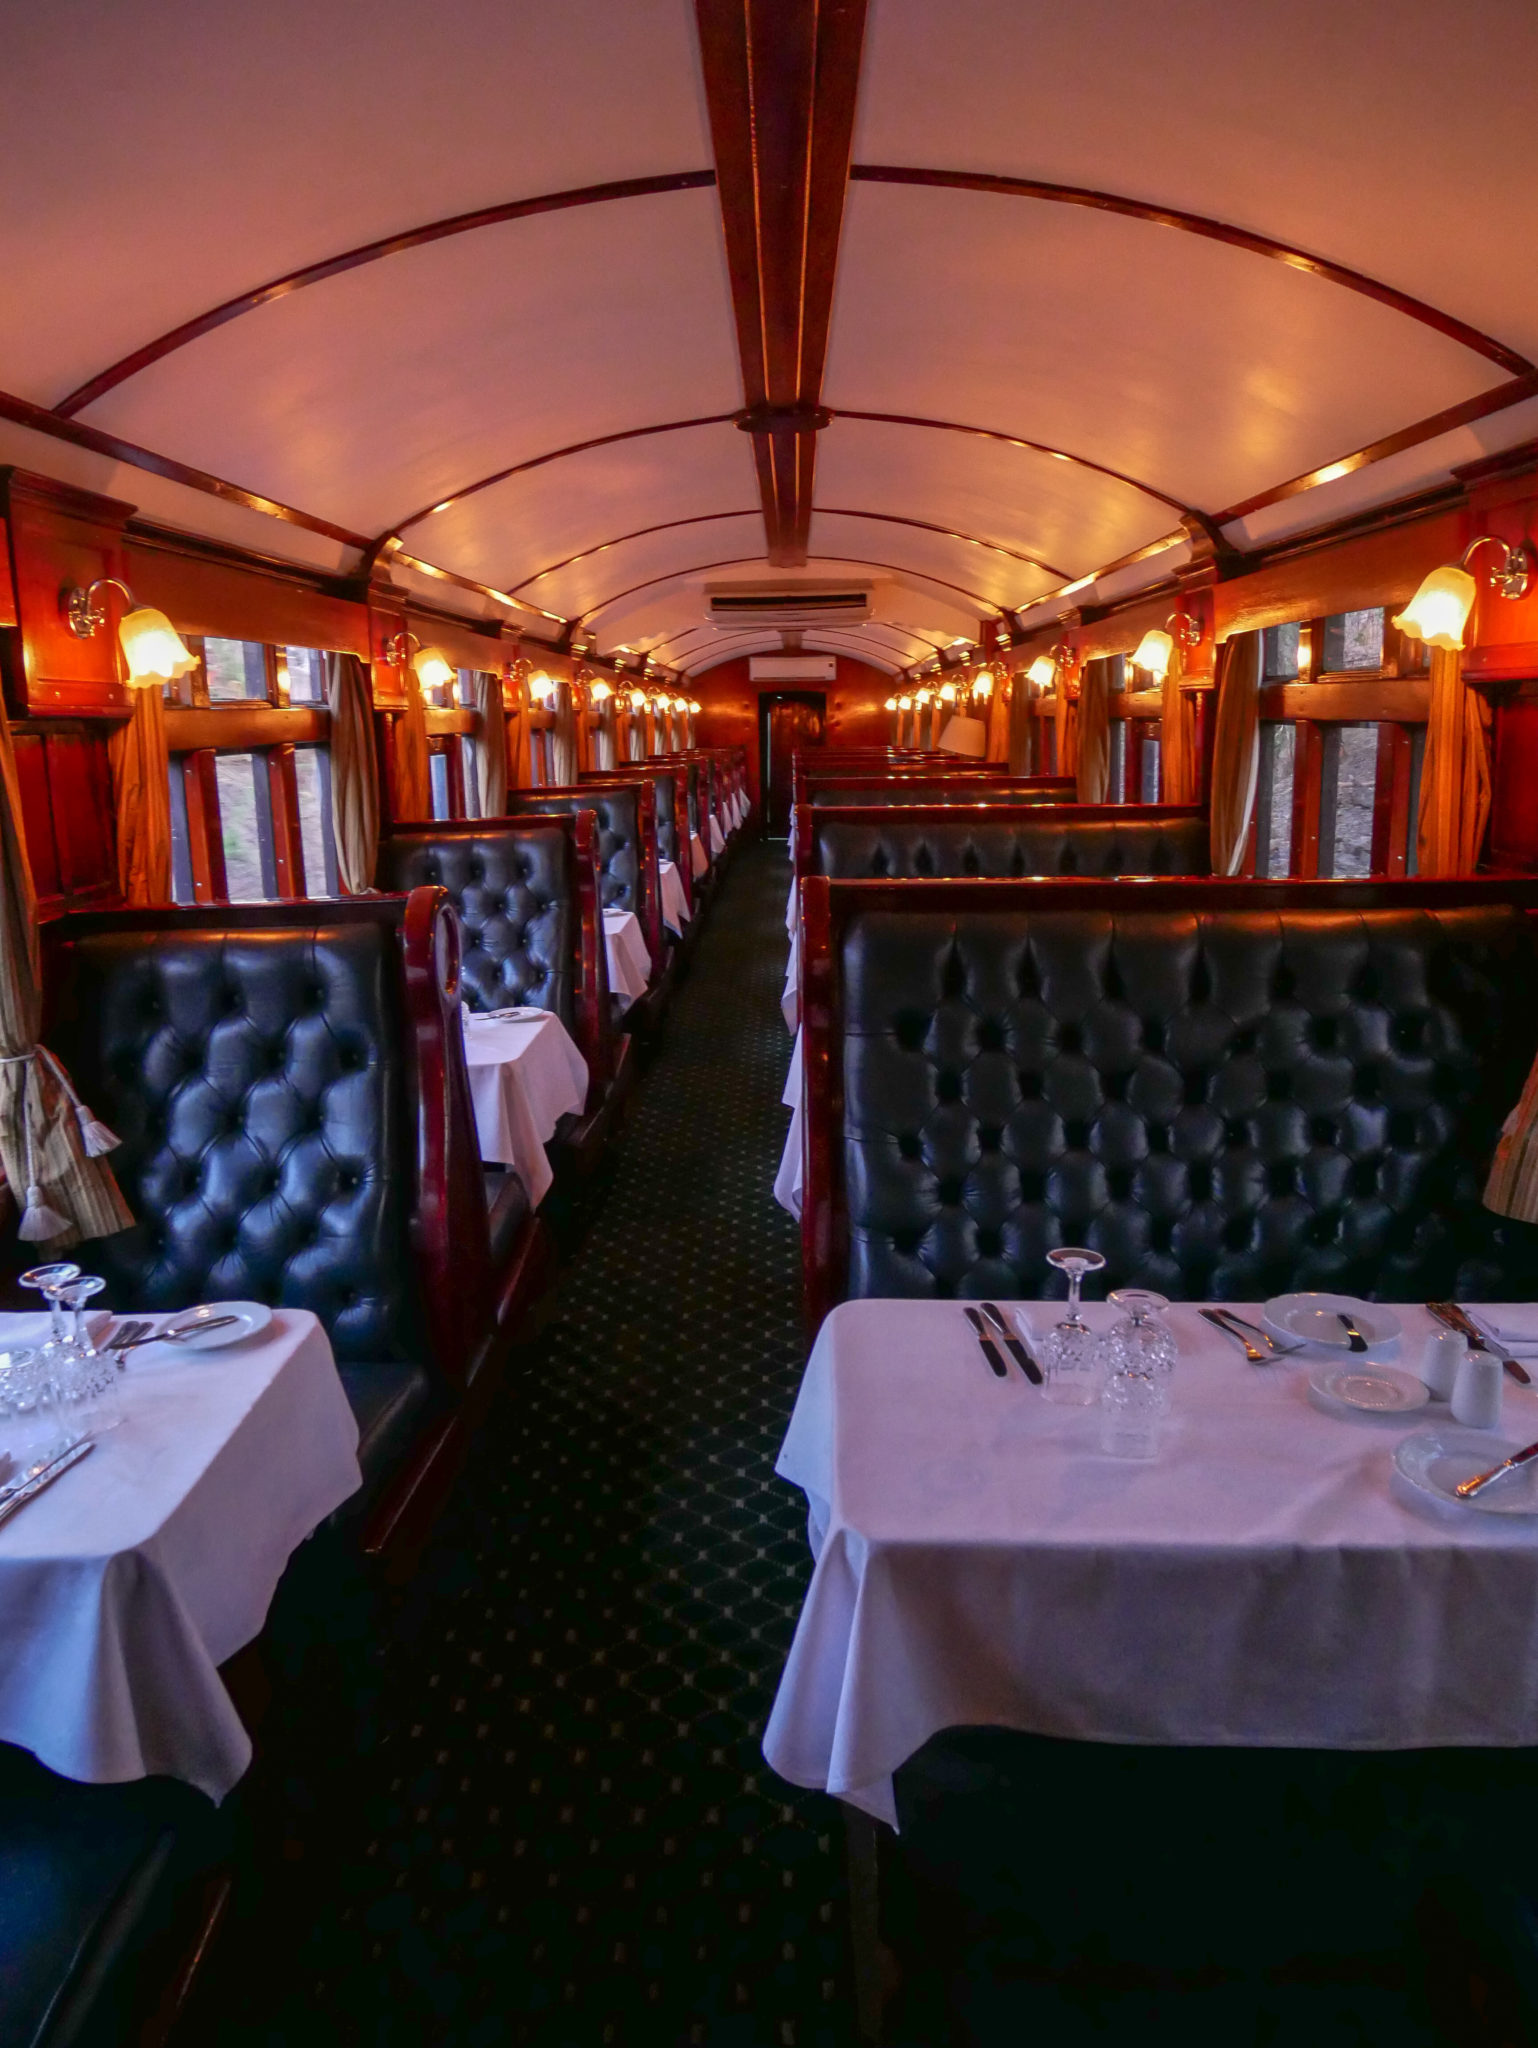 Tall black leather seats and white tablecloths in the Dining Car of the Royal Livingstone Express train